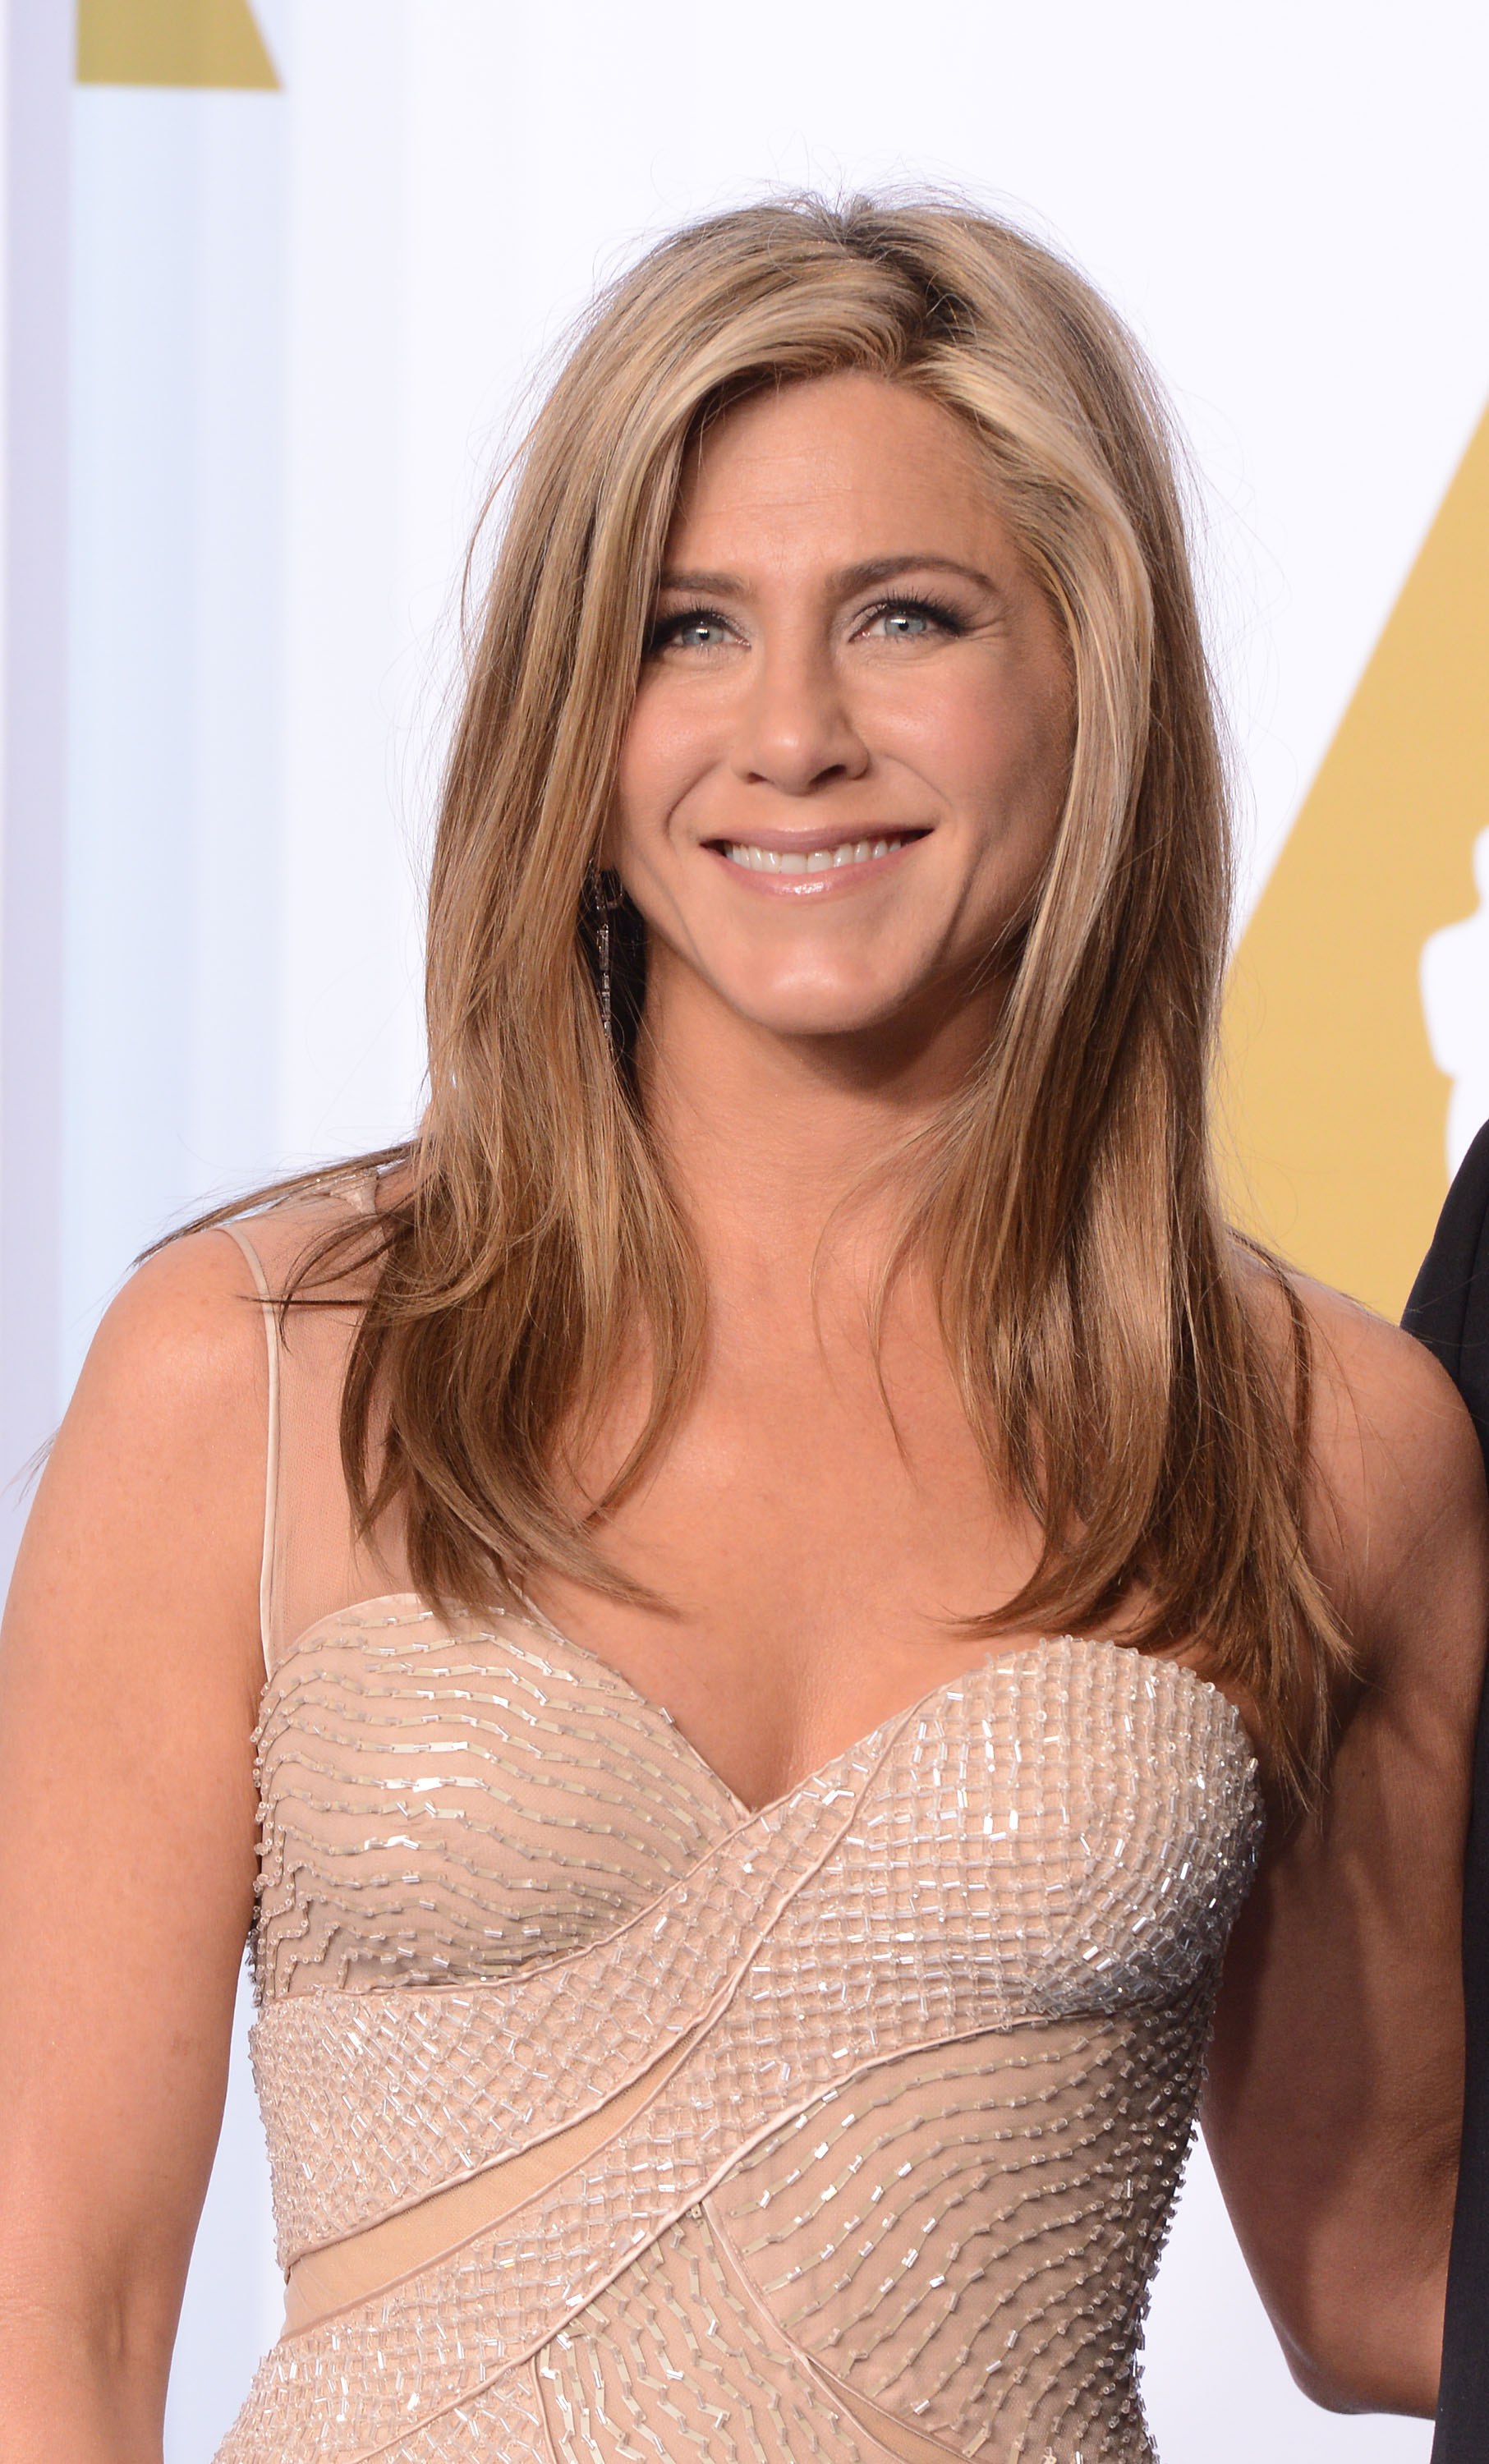 Jennifer Aniston | POPSUGAR Celebrity